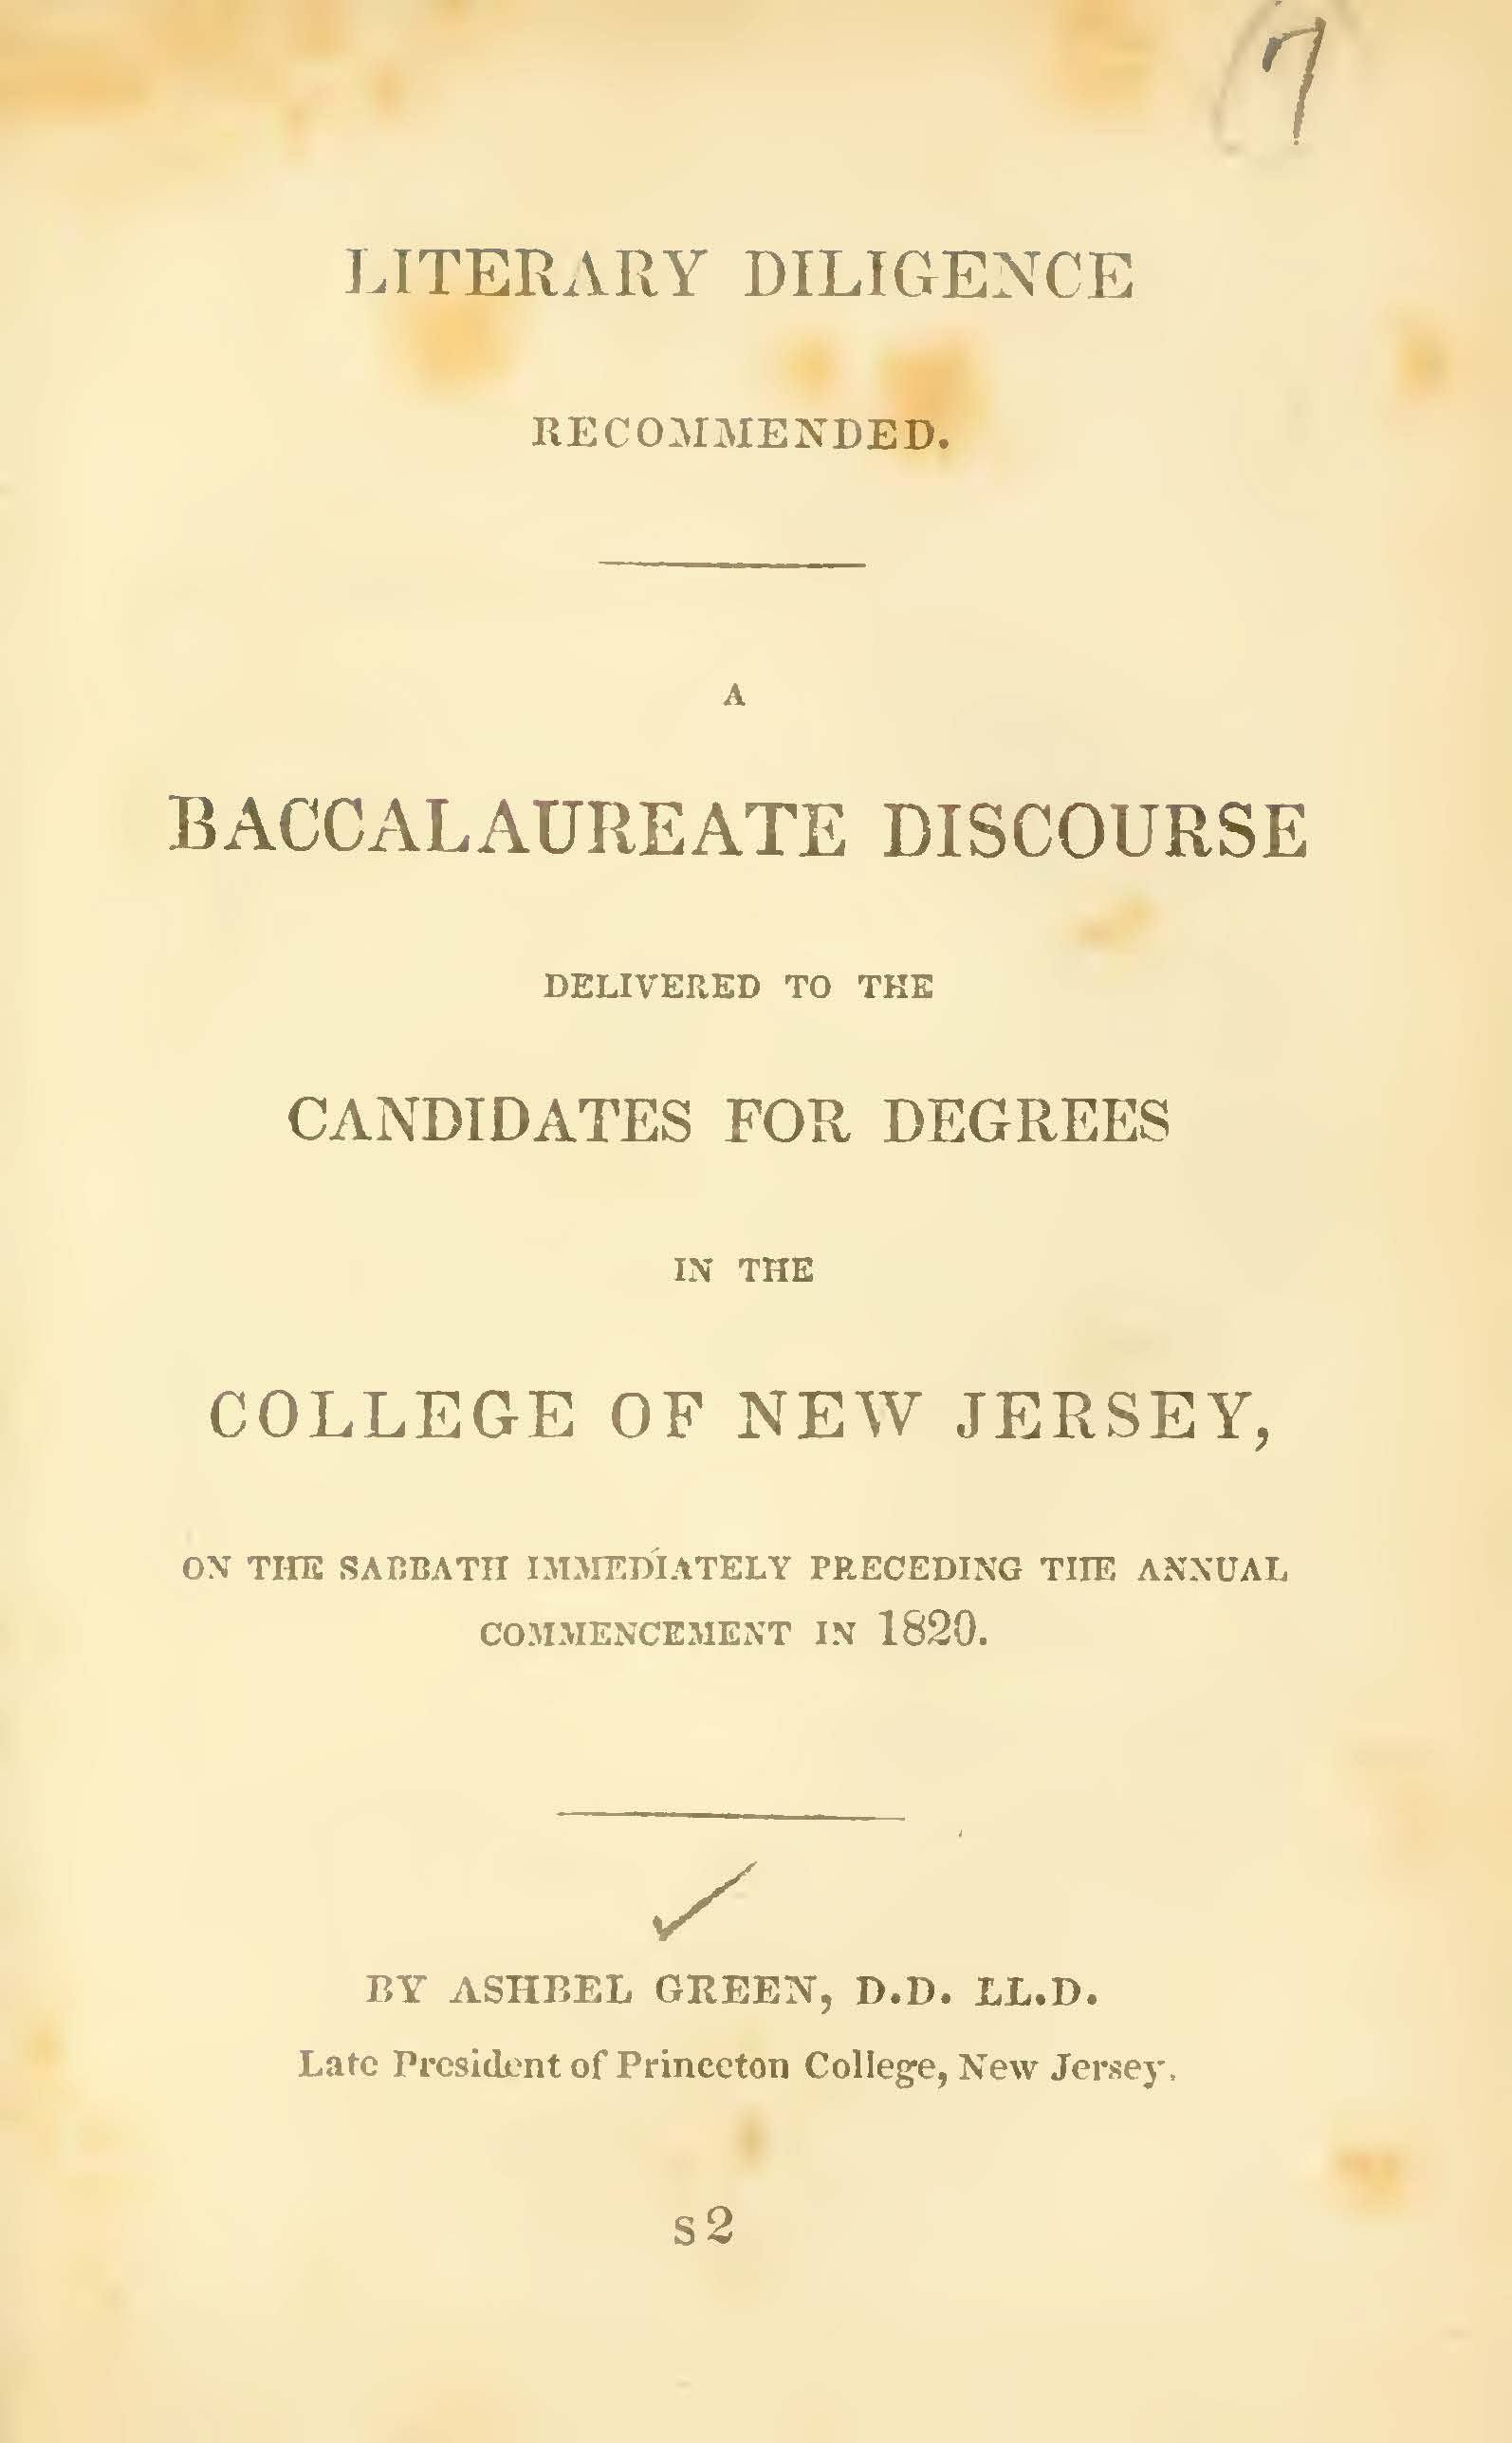 Green, Ashbel, Literary Diligence Recommended Title Page.jpg